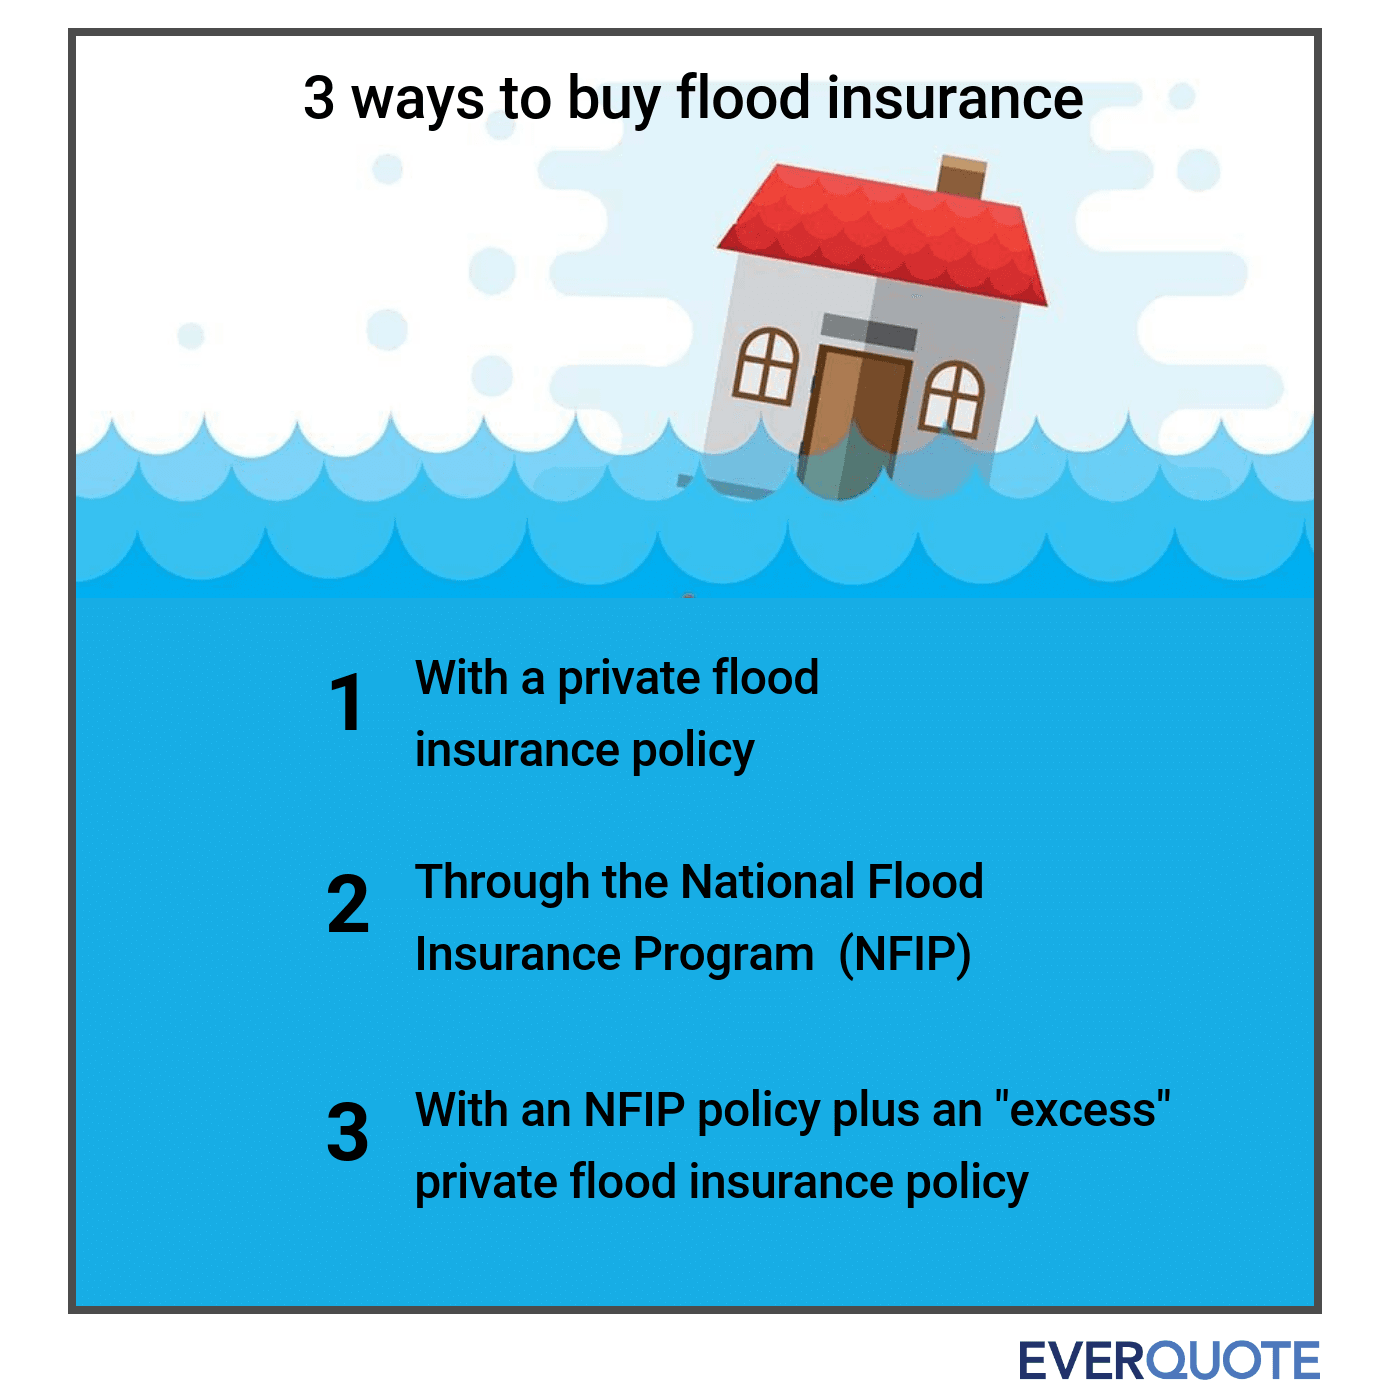 3 ways to buy flood insurance